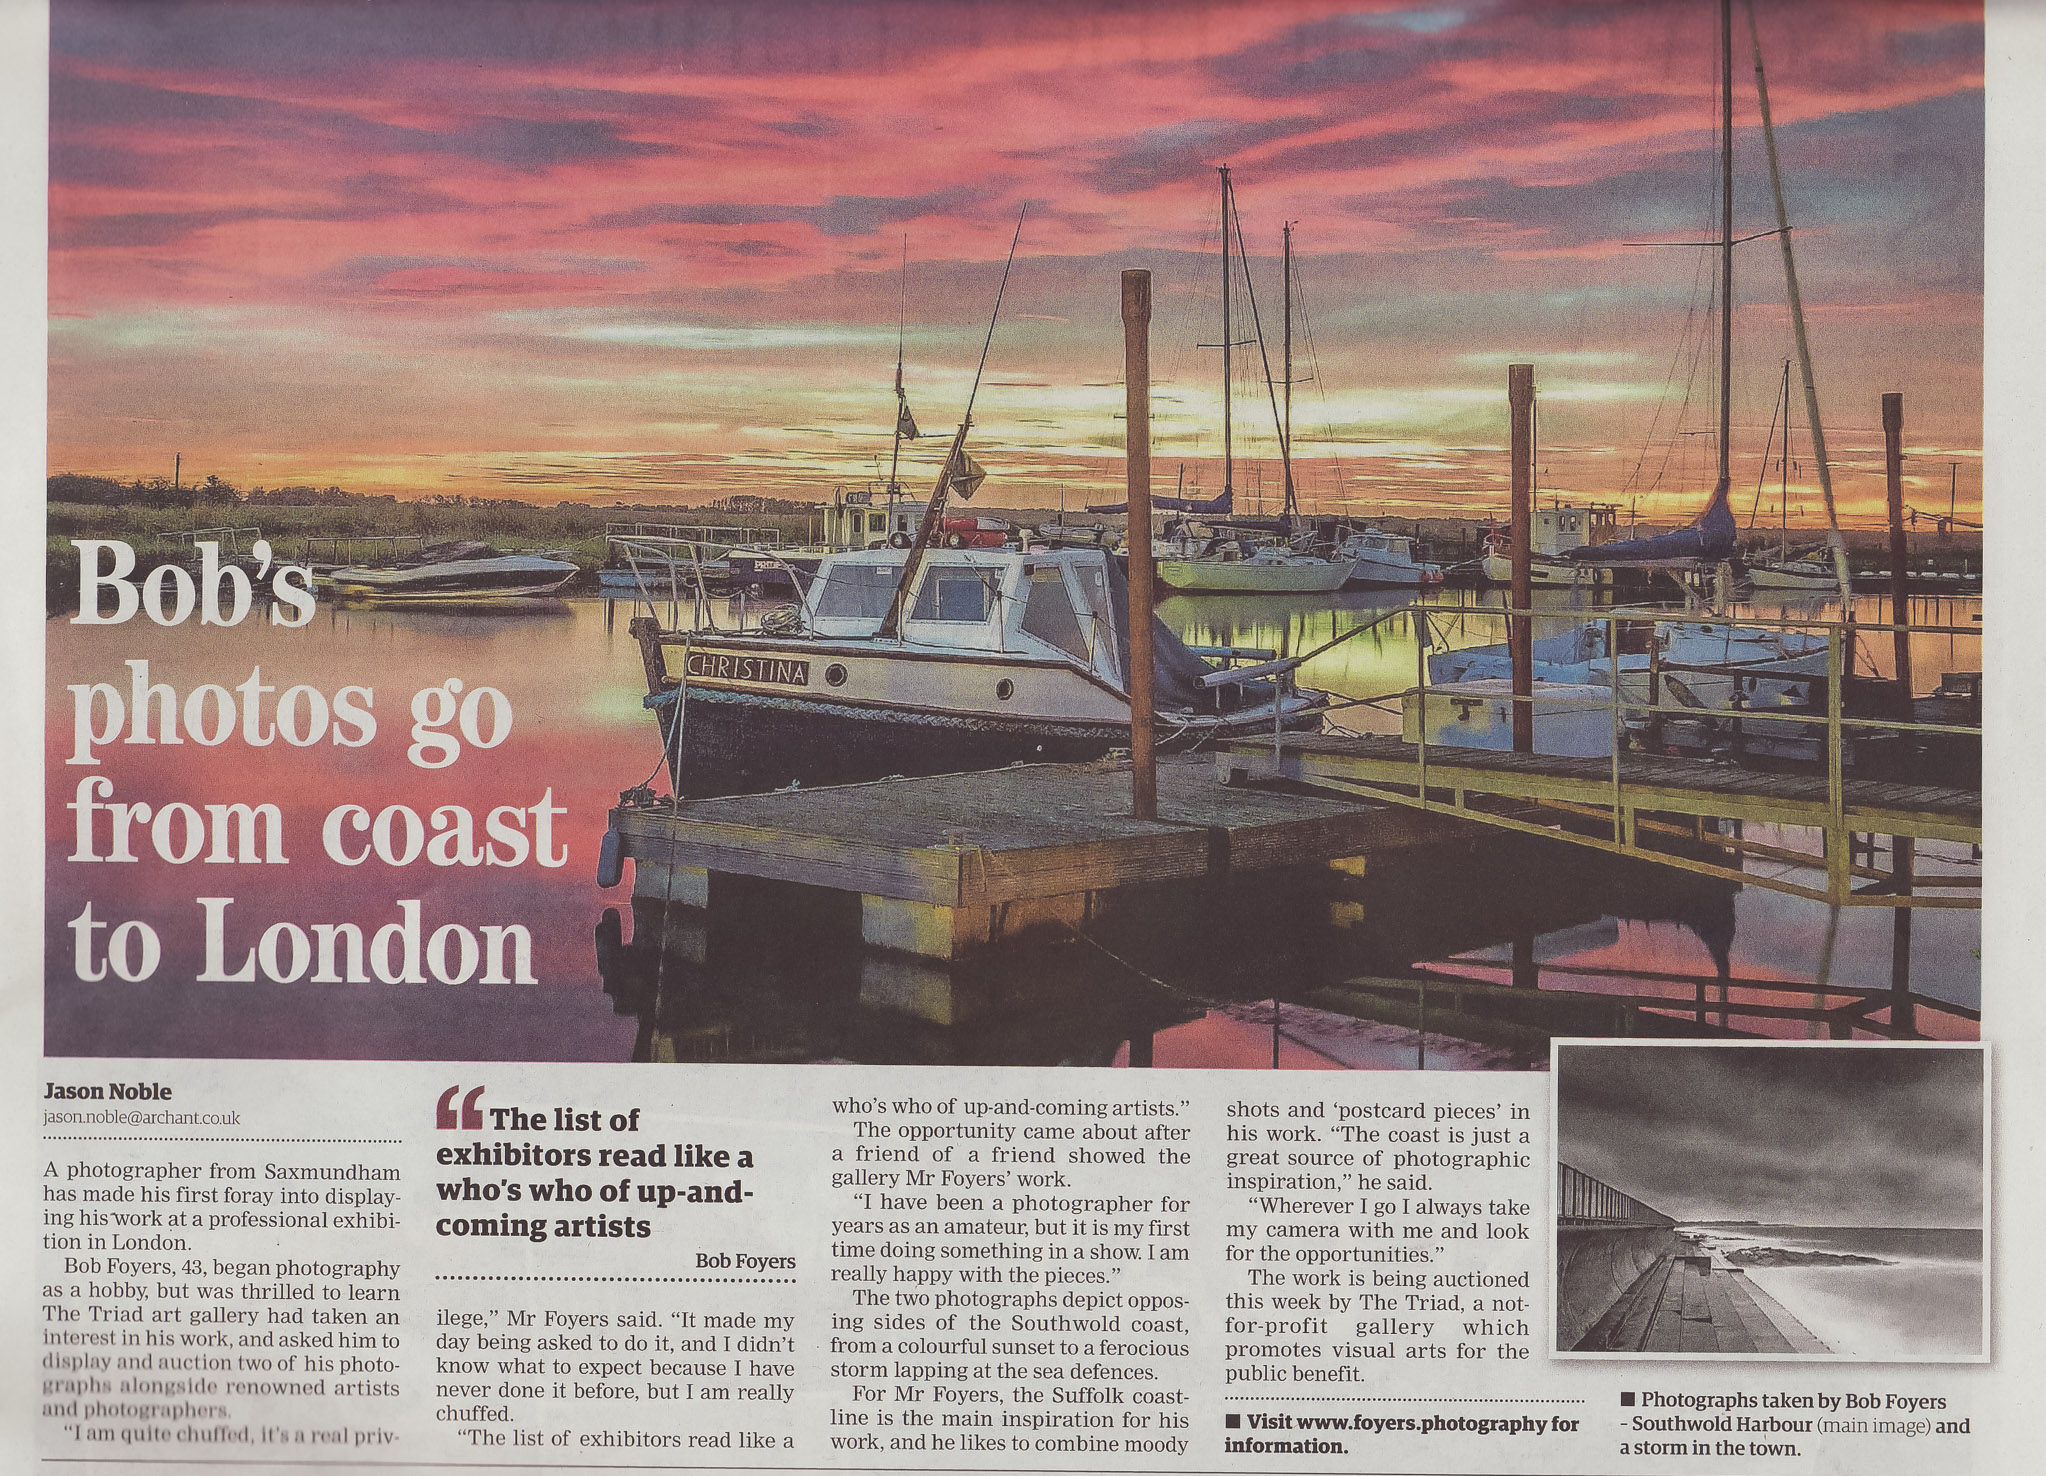 East anglian daily times -1 - copyright Robert Foyers